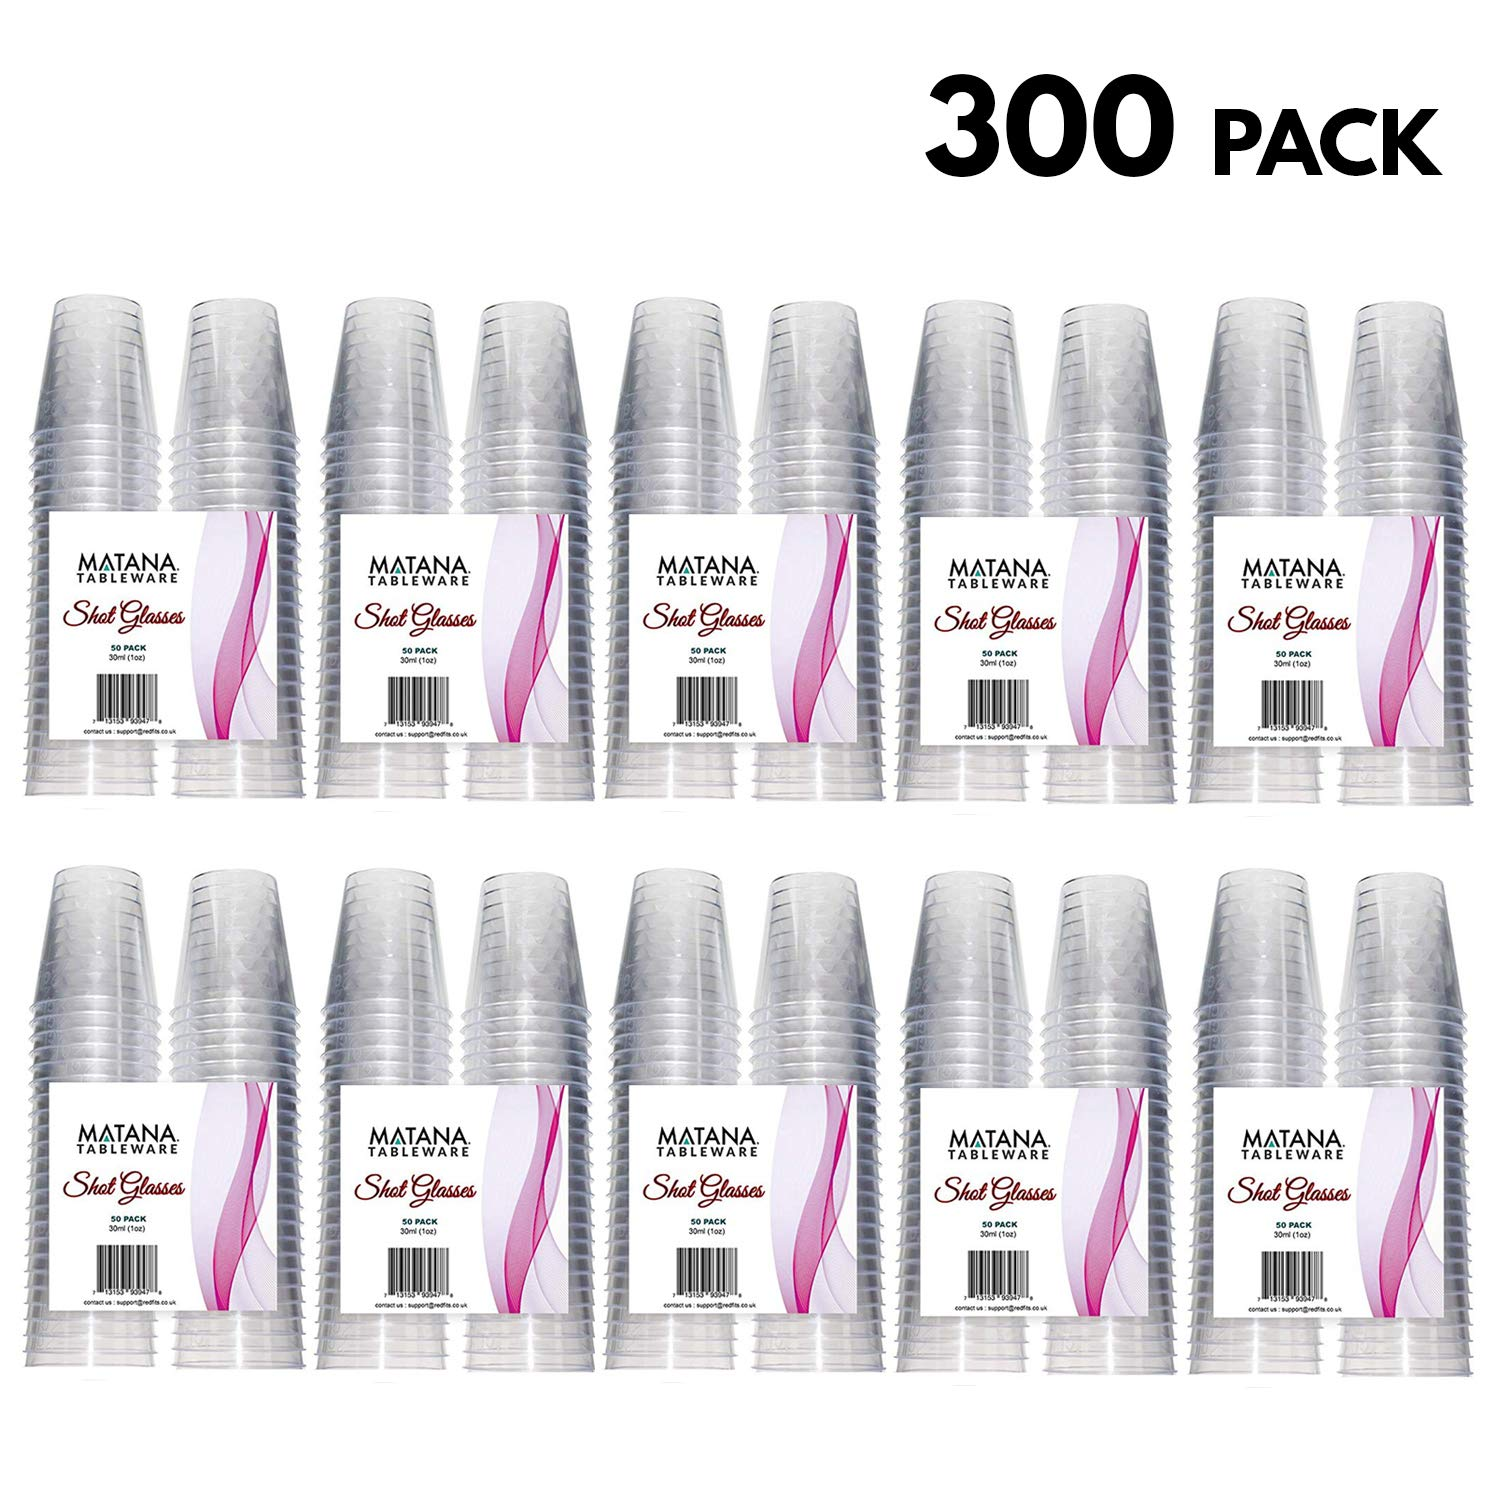 30ml Disposable Hard Plastic Shot Glasses – Perfect for Shots and Vodka Jelly at Christmas Parties (300 Pack)